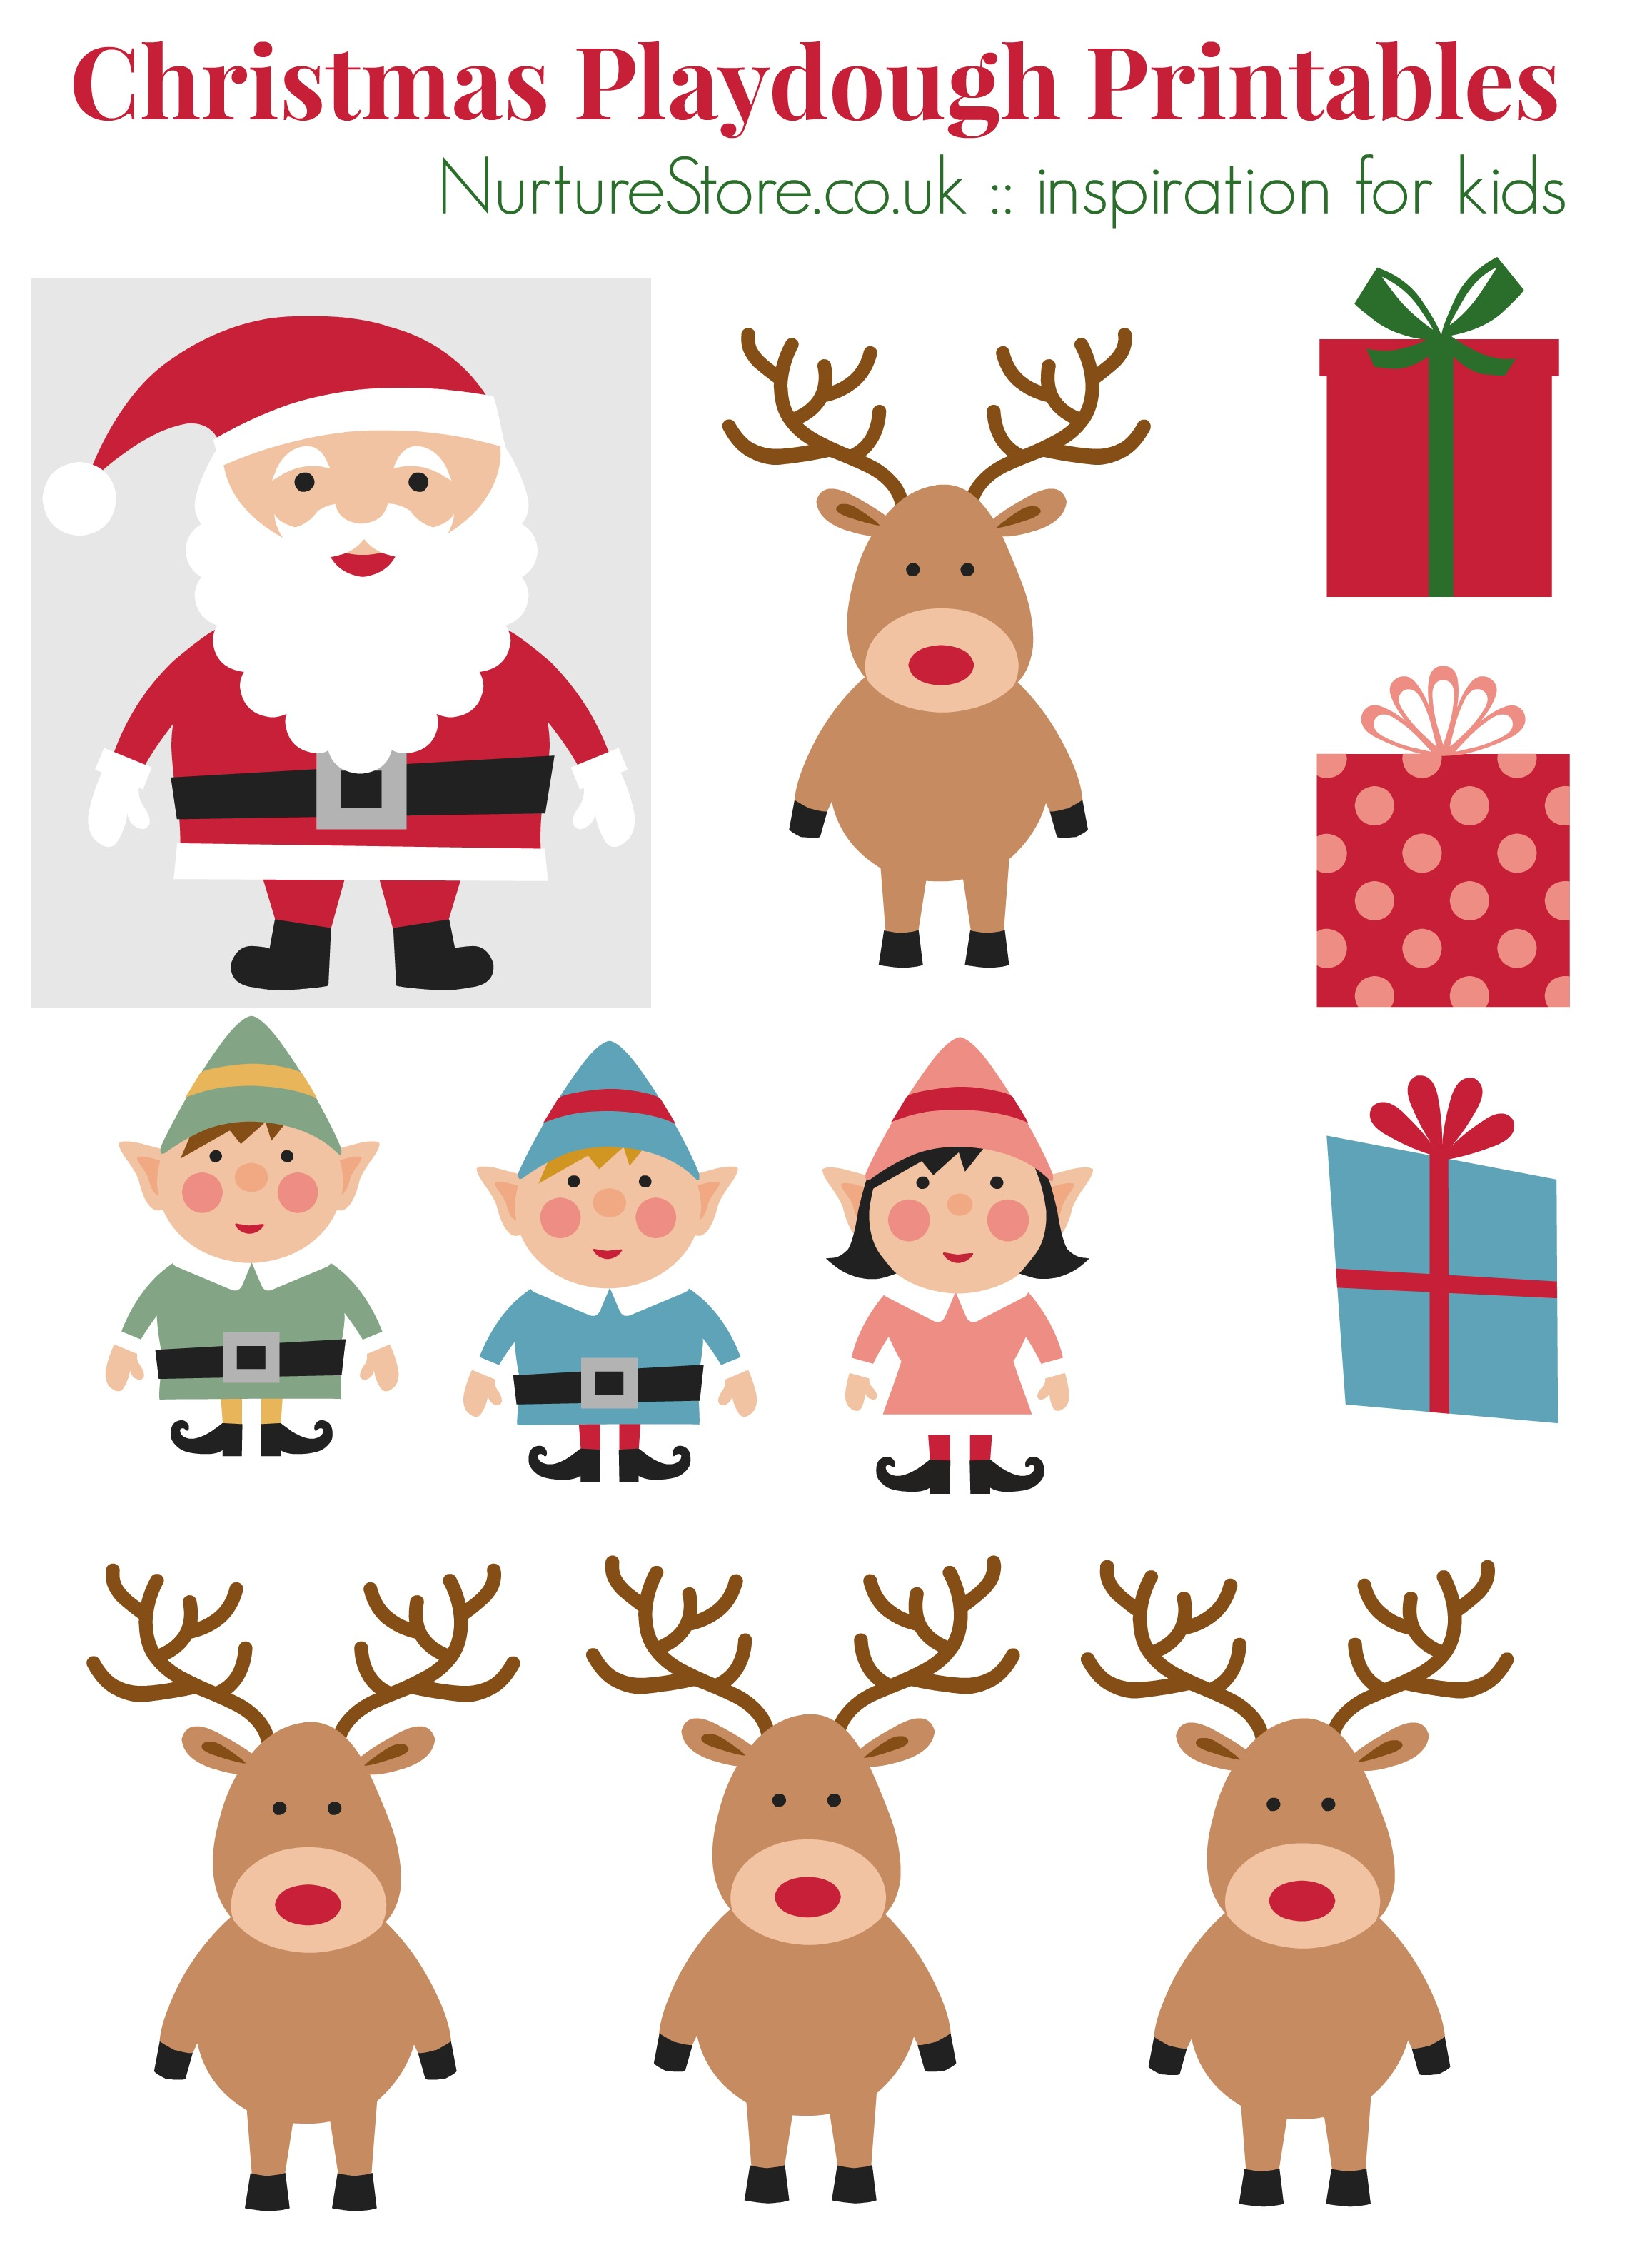 Father Christmas Printables For Playdough